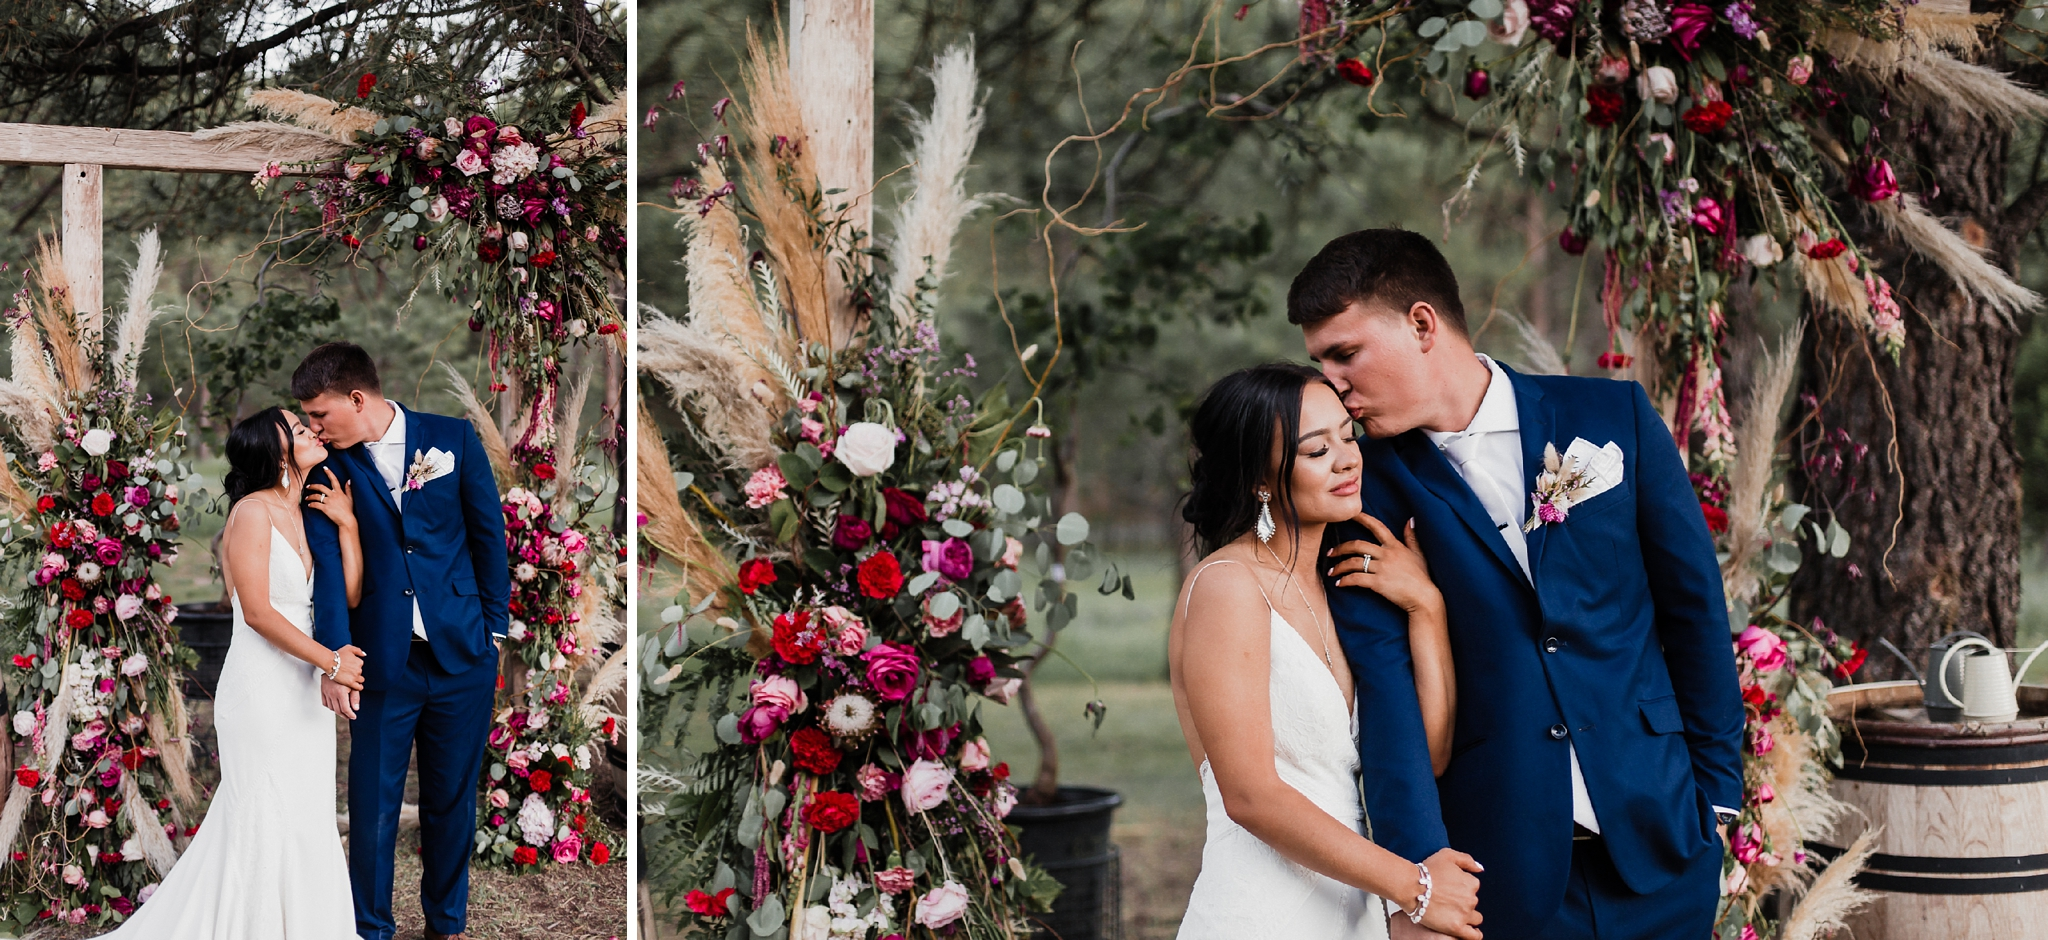 Alicia+lucia+photography+-+albuquerque+wedding+photographer+-+santa+fe+wedding+photography+-+new+mexico+wedding+photographer+-+new+mexico+wedding+-+new+mexico+wedding+-+barn+wedding+-+enchanted+vine+barn+wedding+-+ruidoso+wedding_0153.jpg